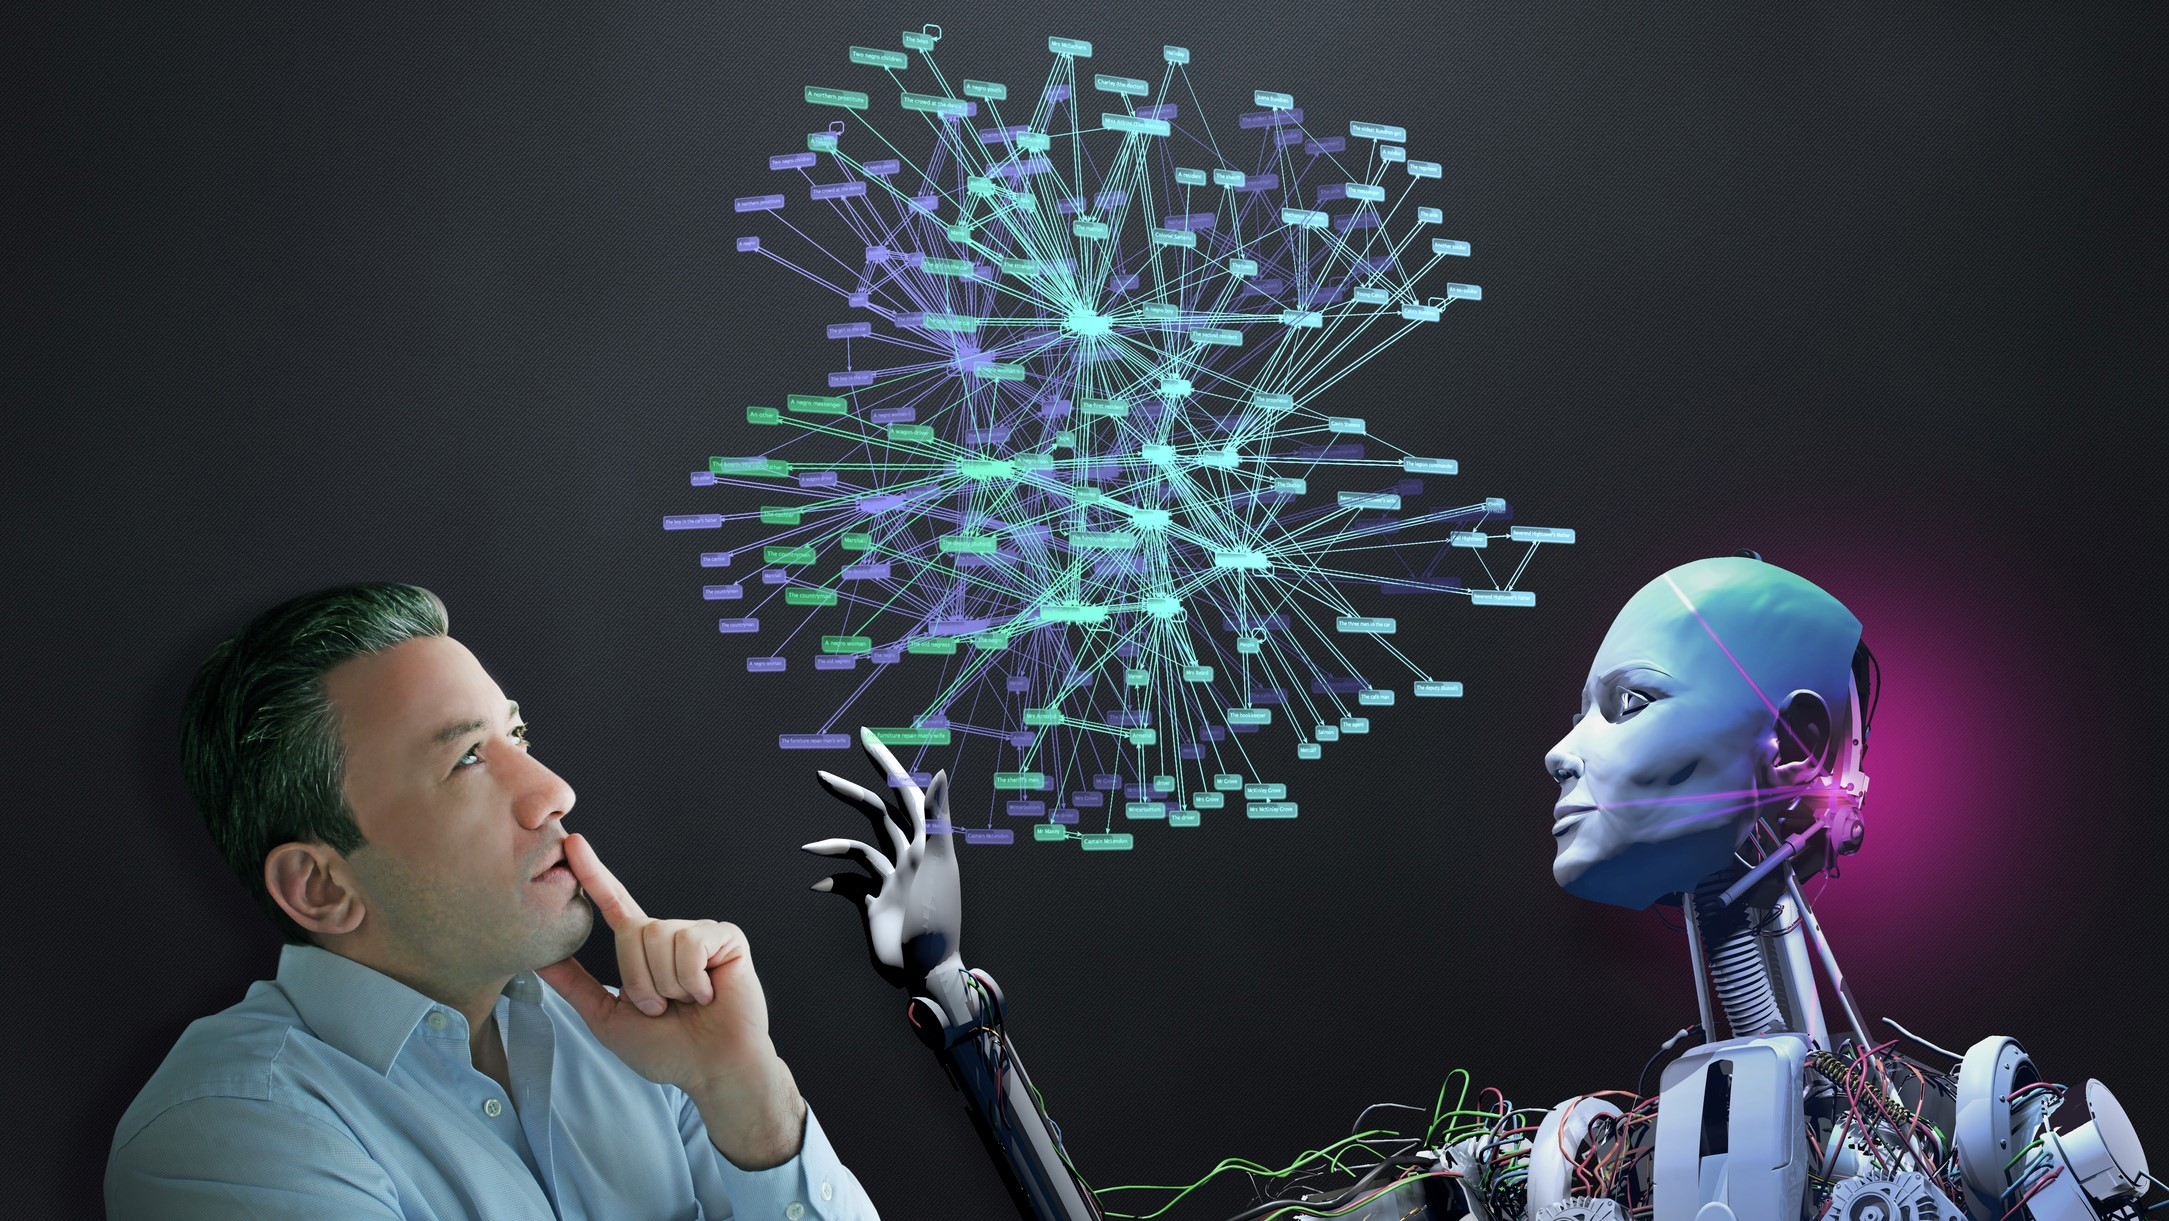 techradar.com - Elif Tutuk - Placing humans at the centre of Artificial Intelligence